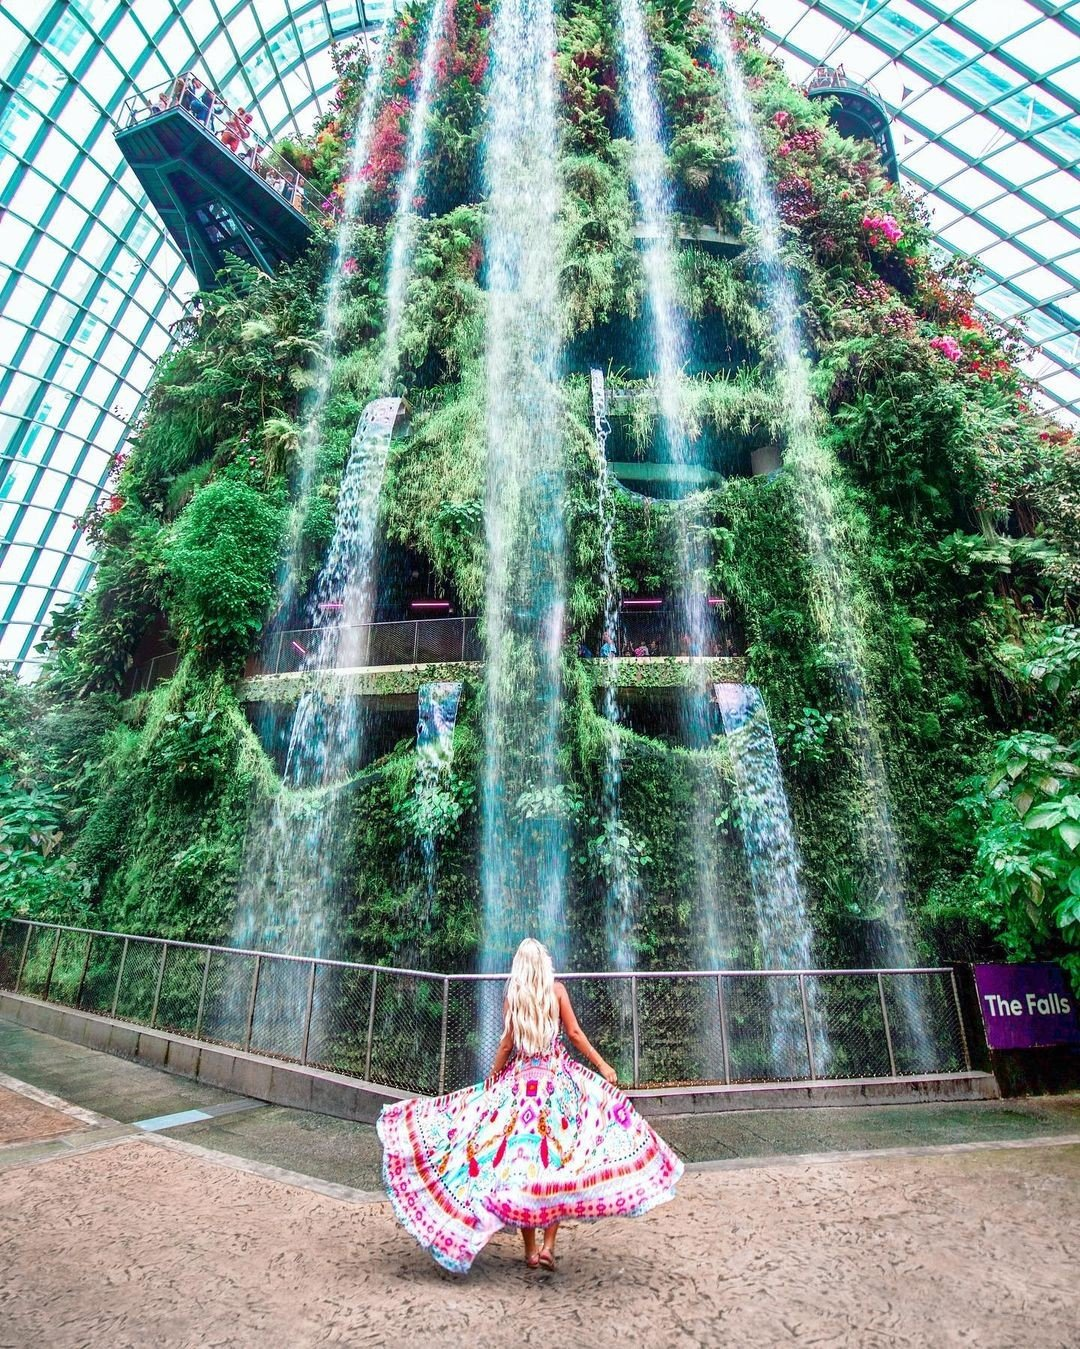 Cloud Forest Gardens by the Bay: Places to take photos in Singapore